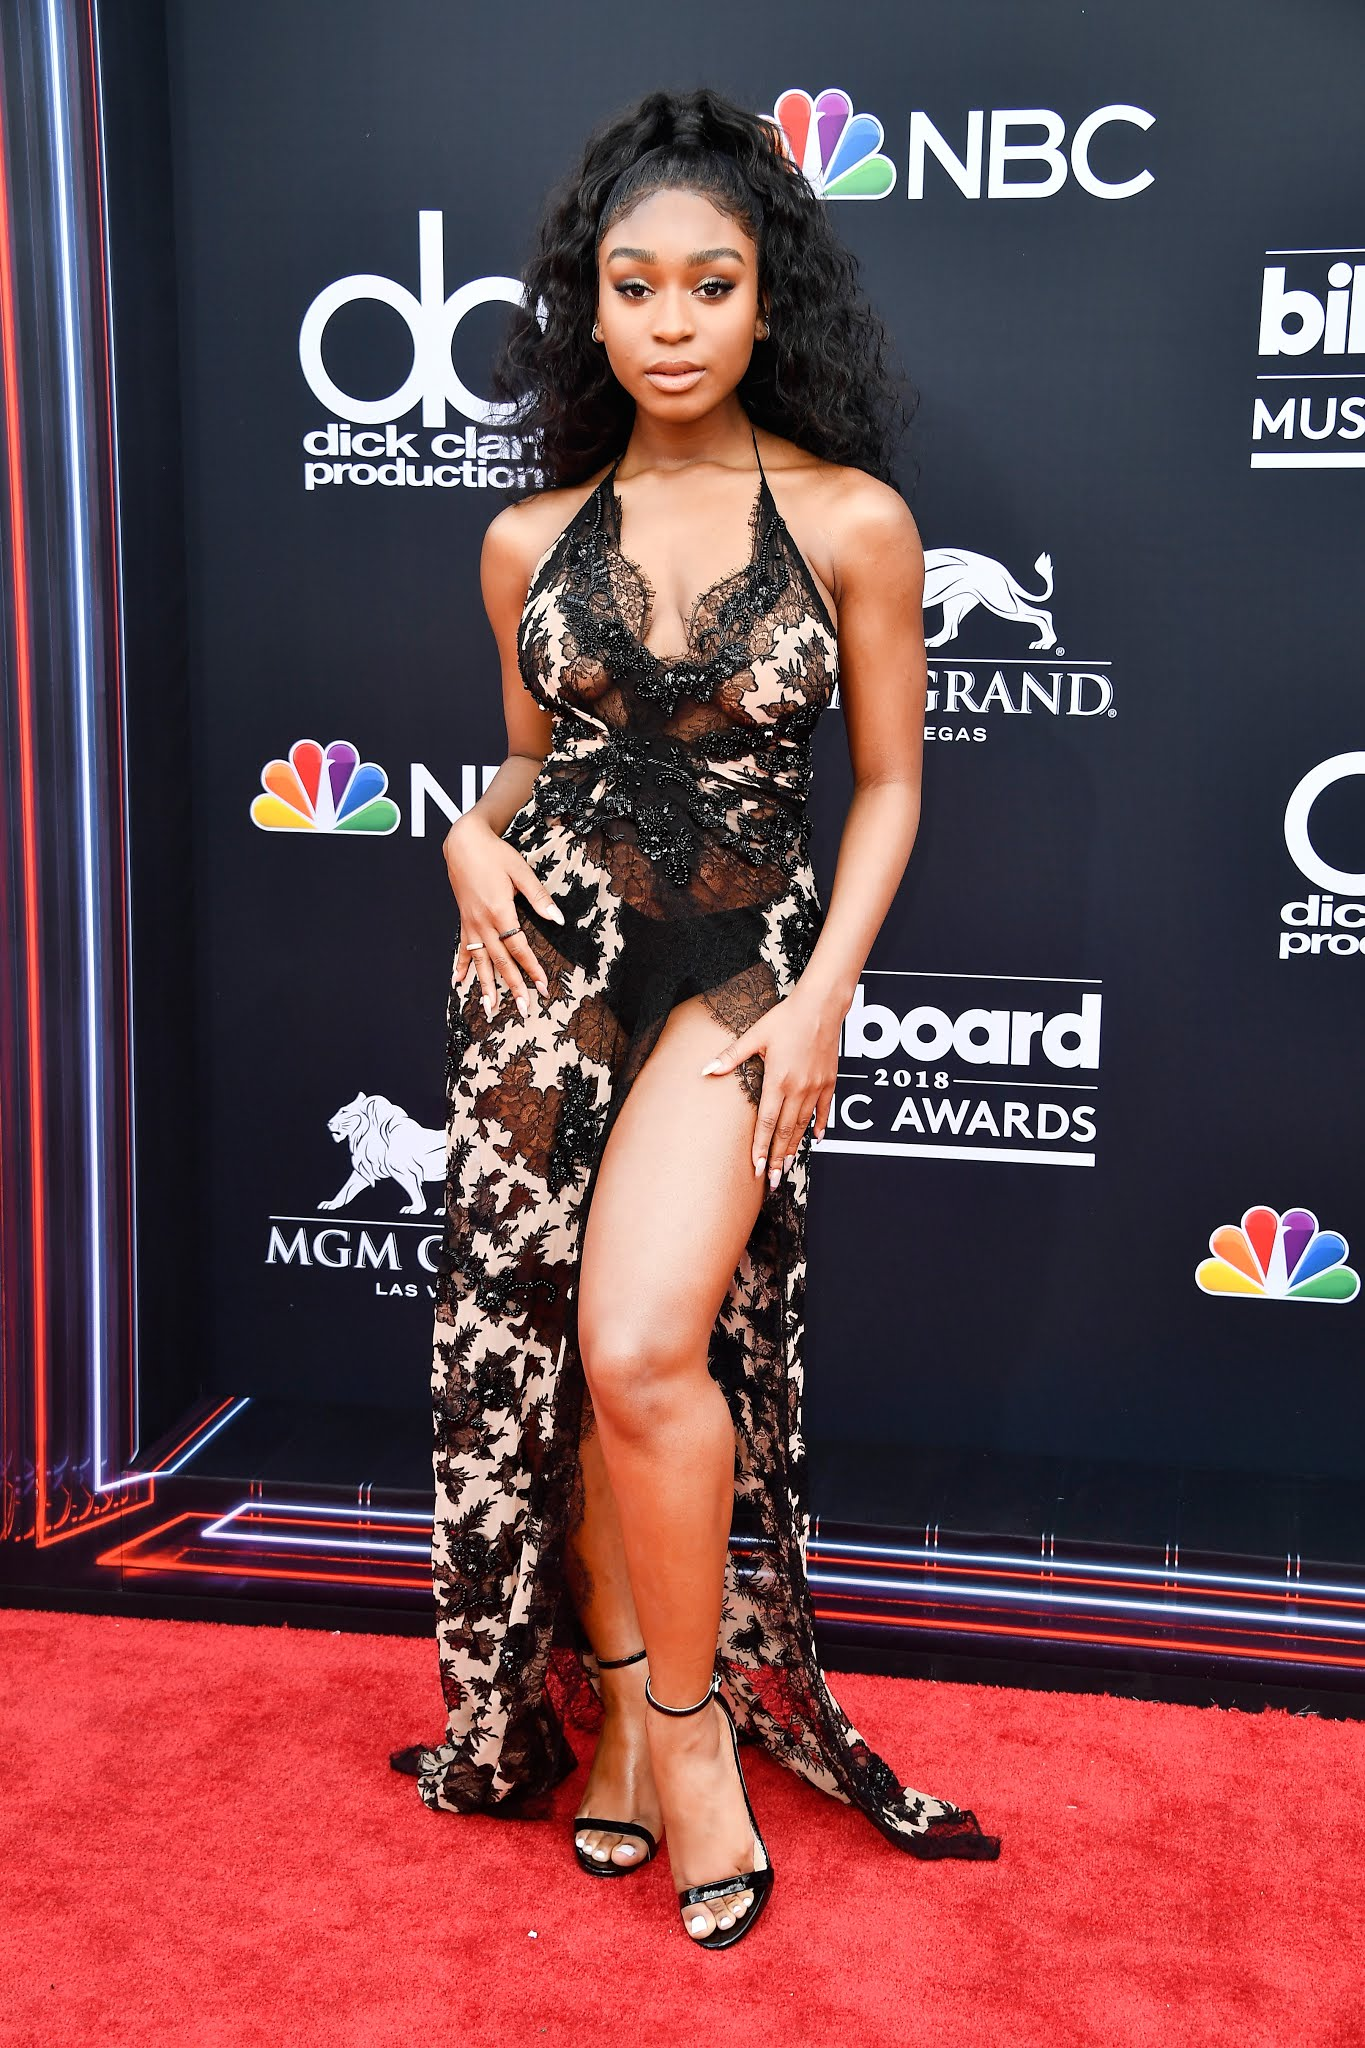 .@normani stole the show at the #BBMAs. https://t.co/6PQThTV4Xe https://t.co/yOQox0oN4Y